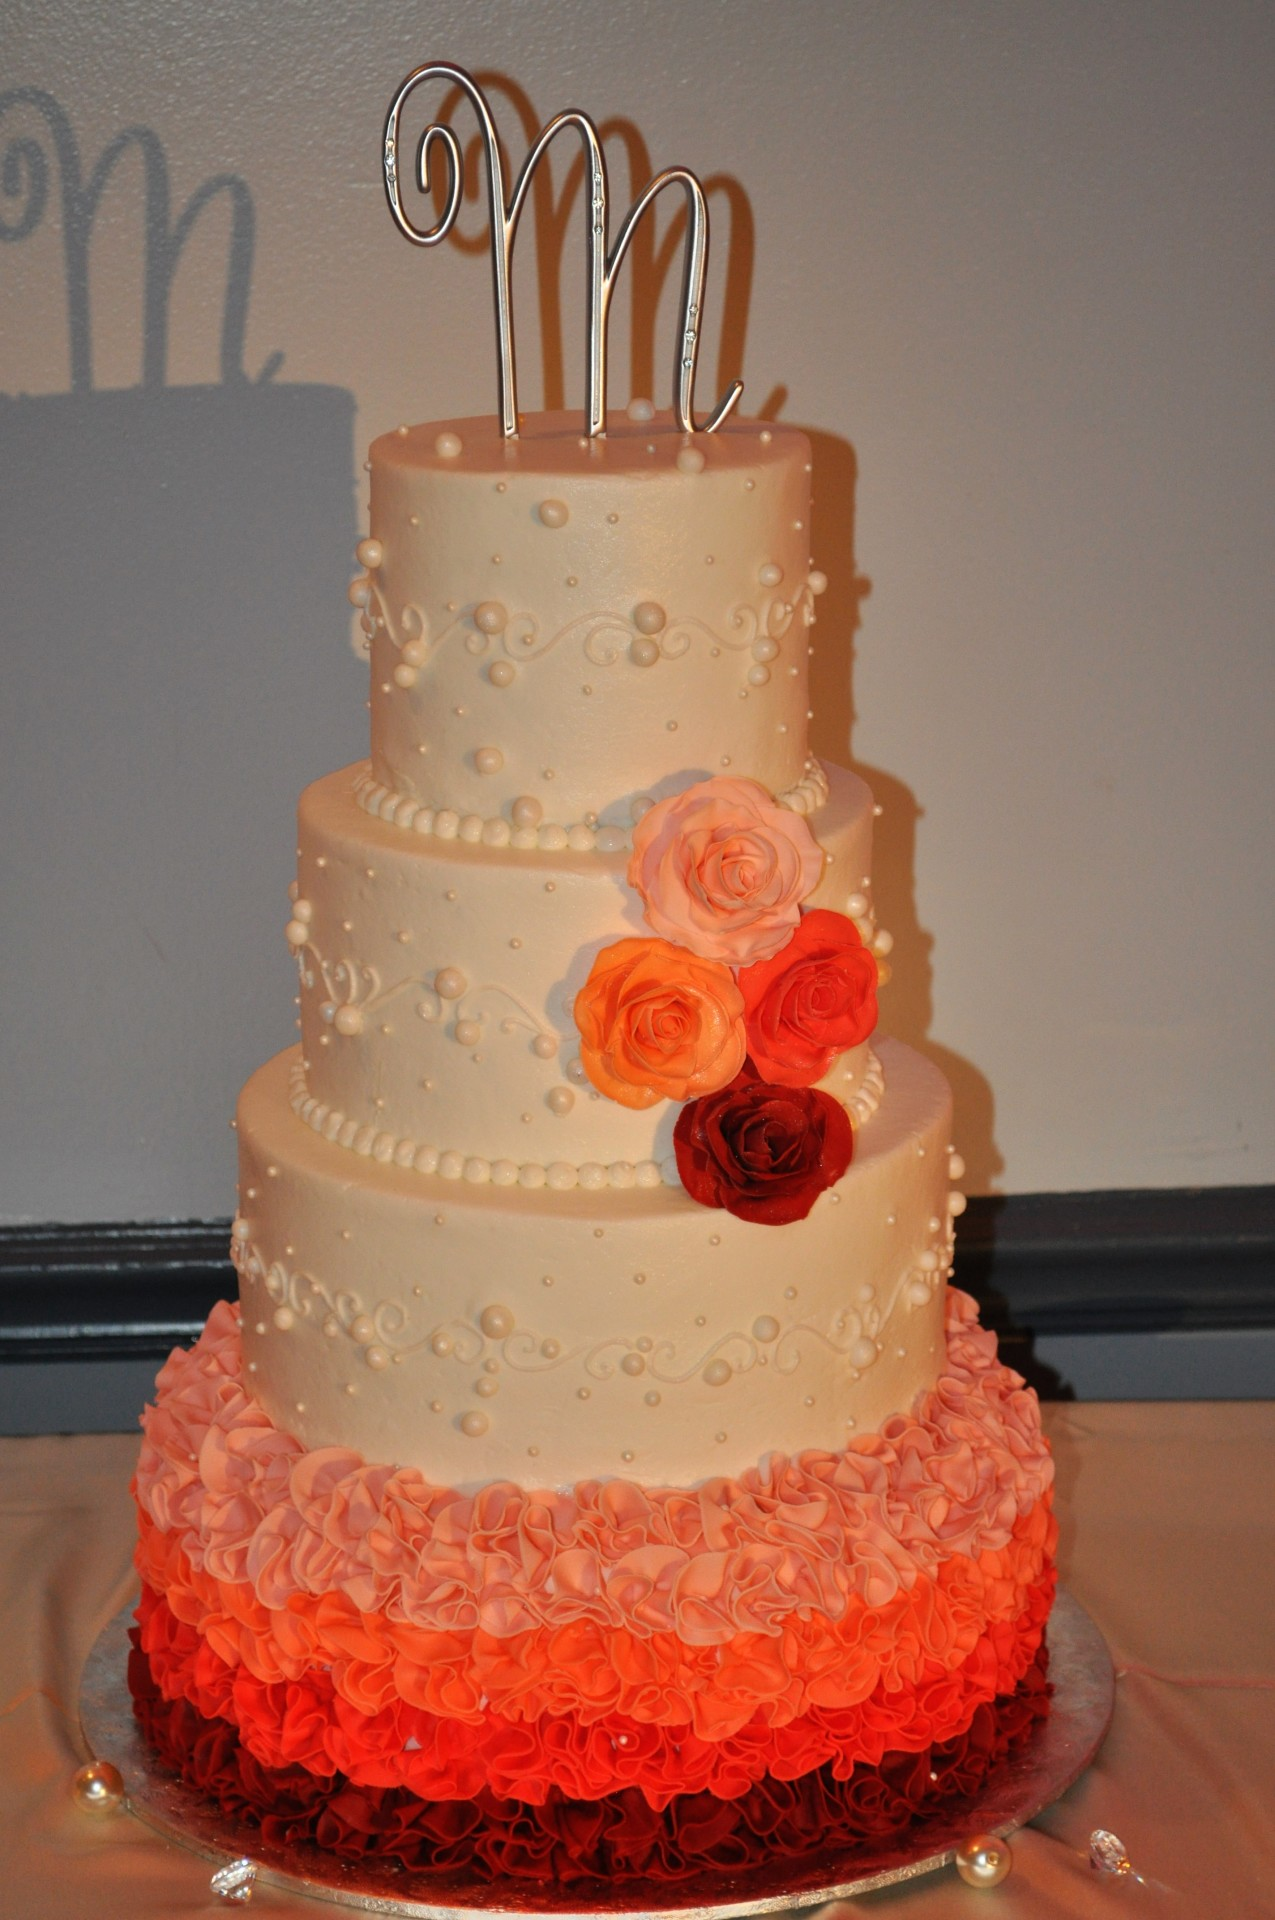 Peach Maroon fondant ruffles with sugar roses